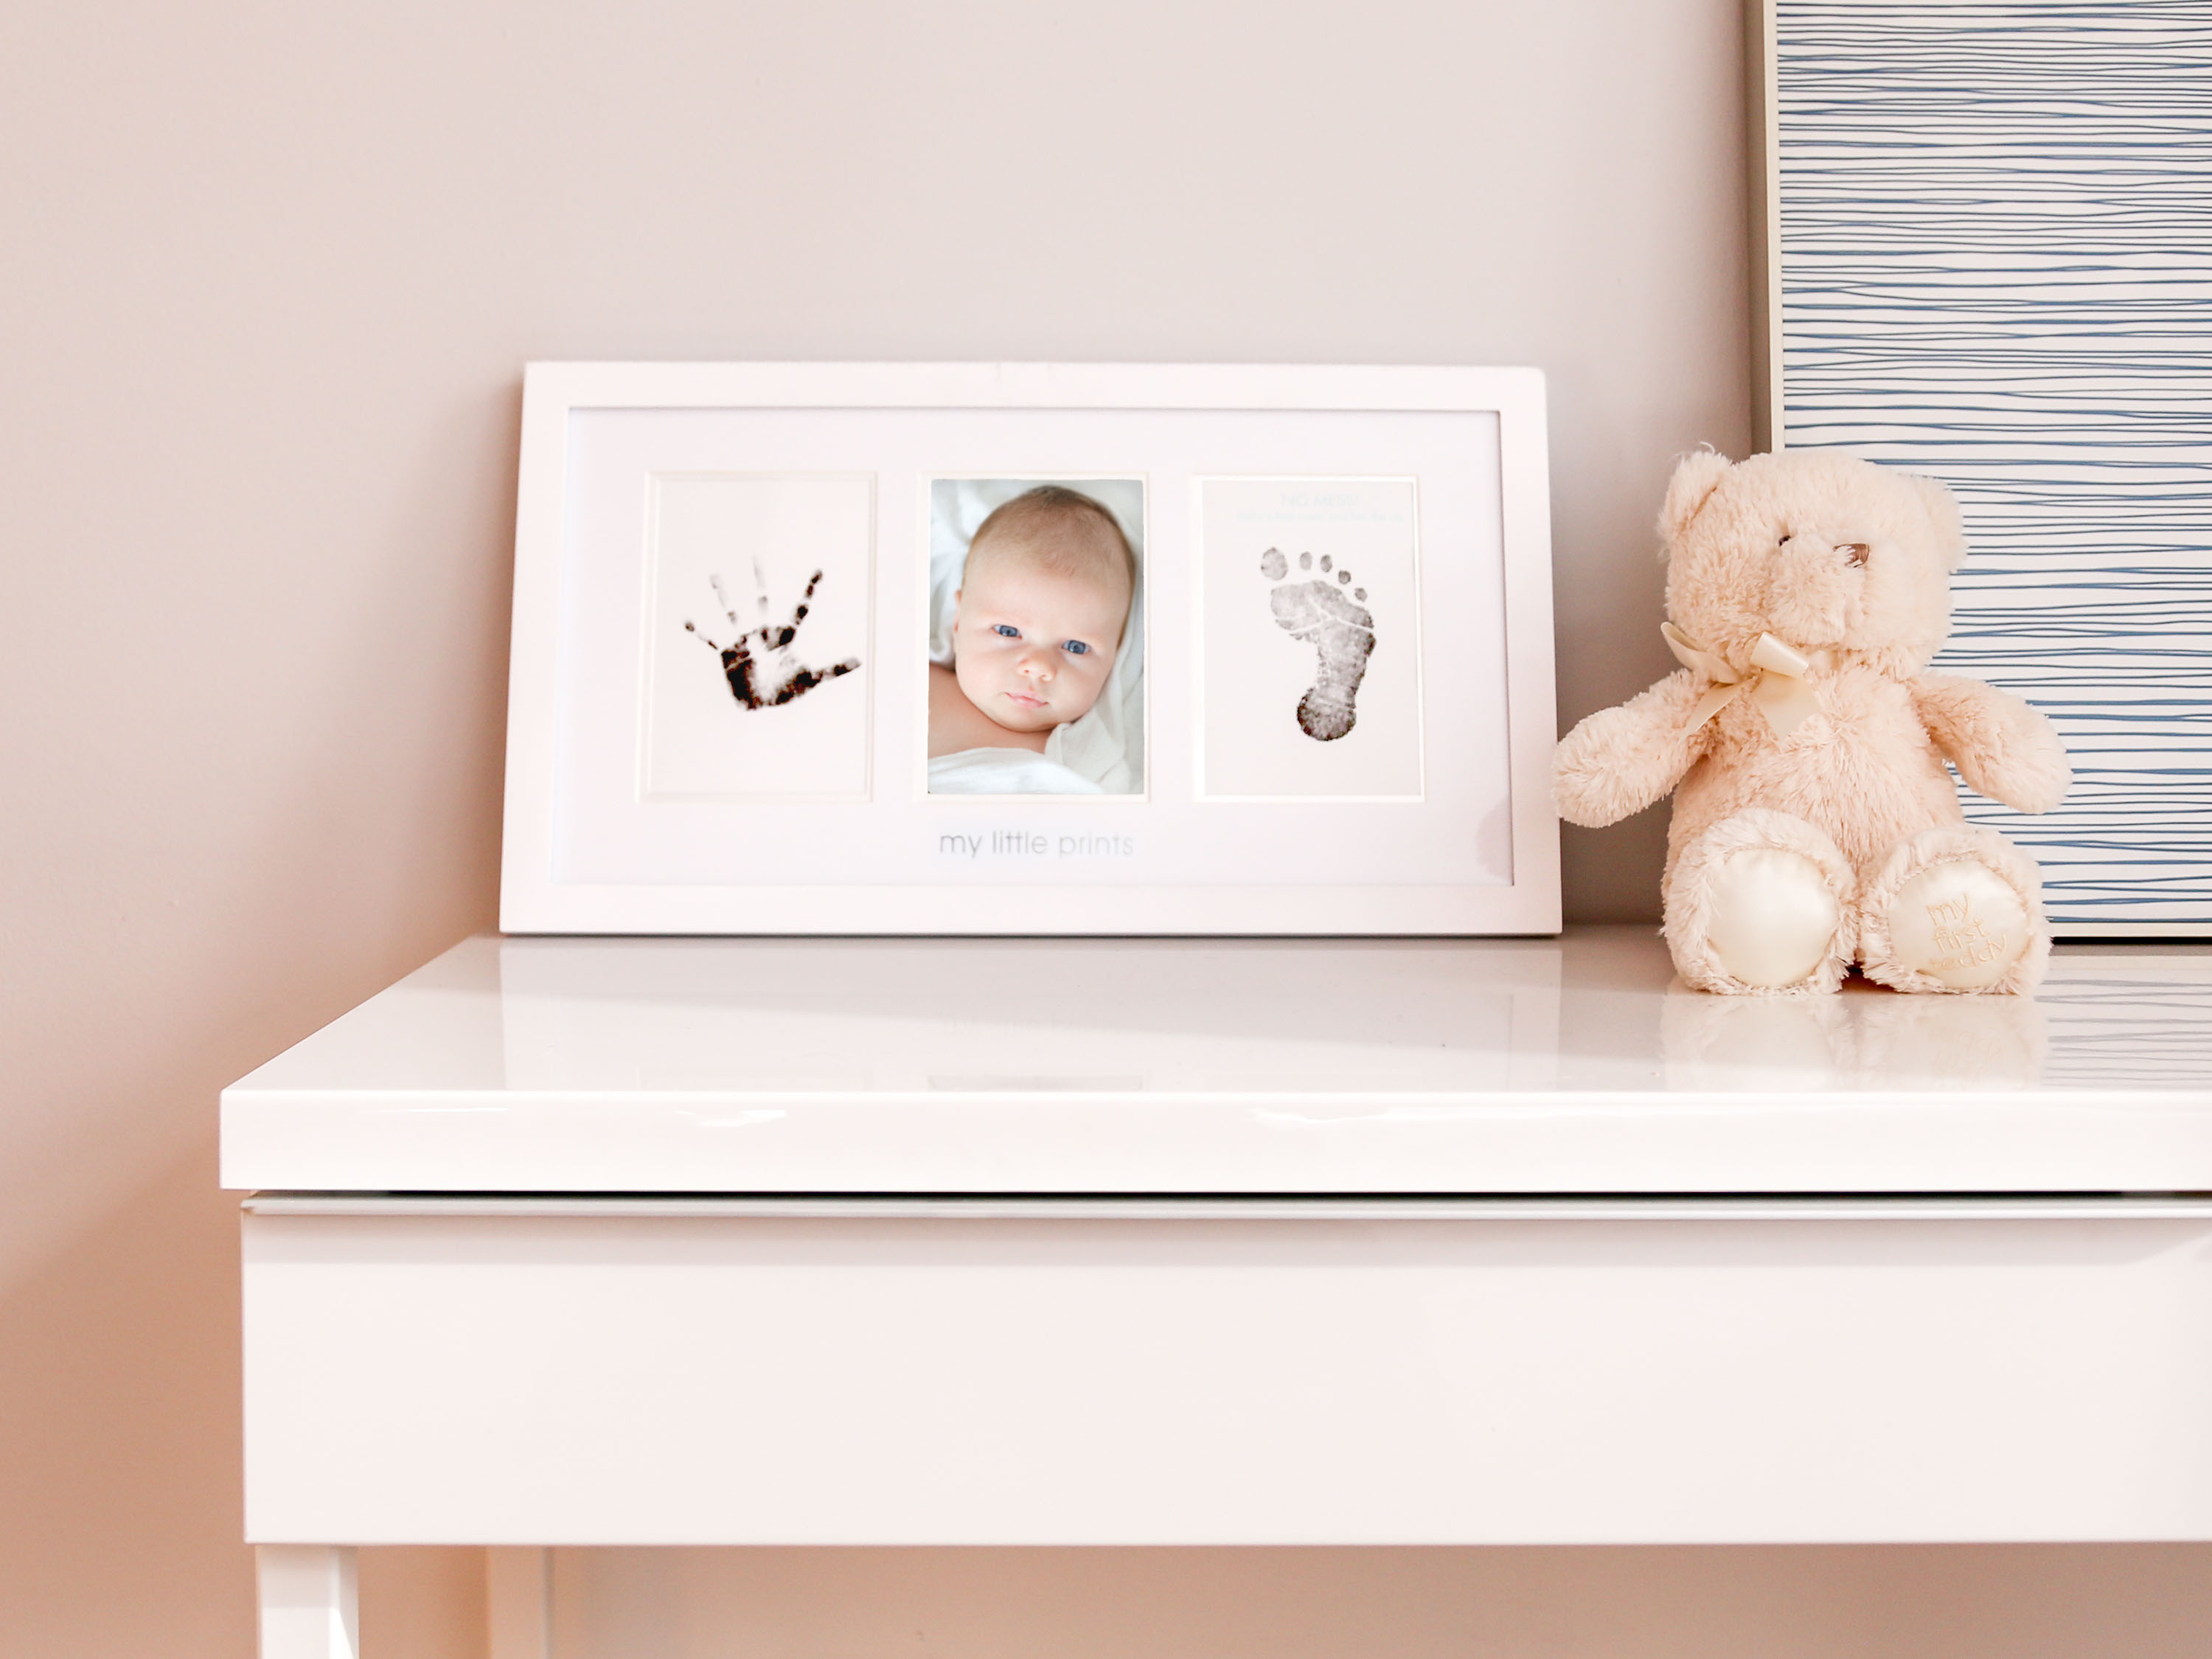 Babyprints Photo Frame from Pearhead